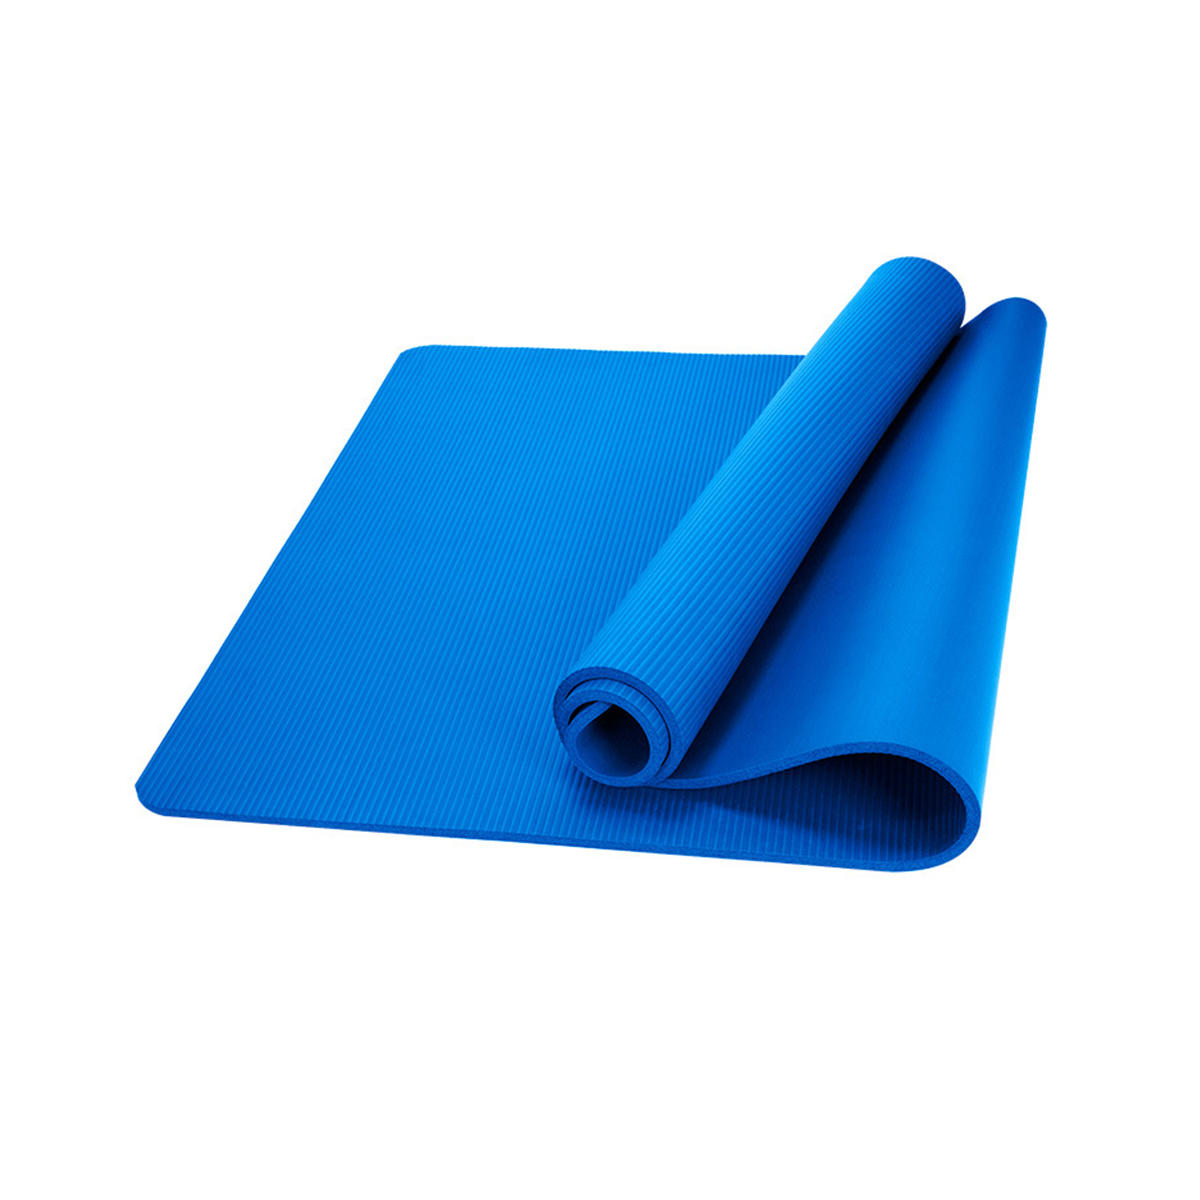 10mm Thick Non-slip Yoga Mat Pad Exercise Fitness Pilates Training Mats Gym